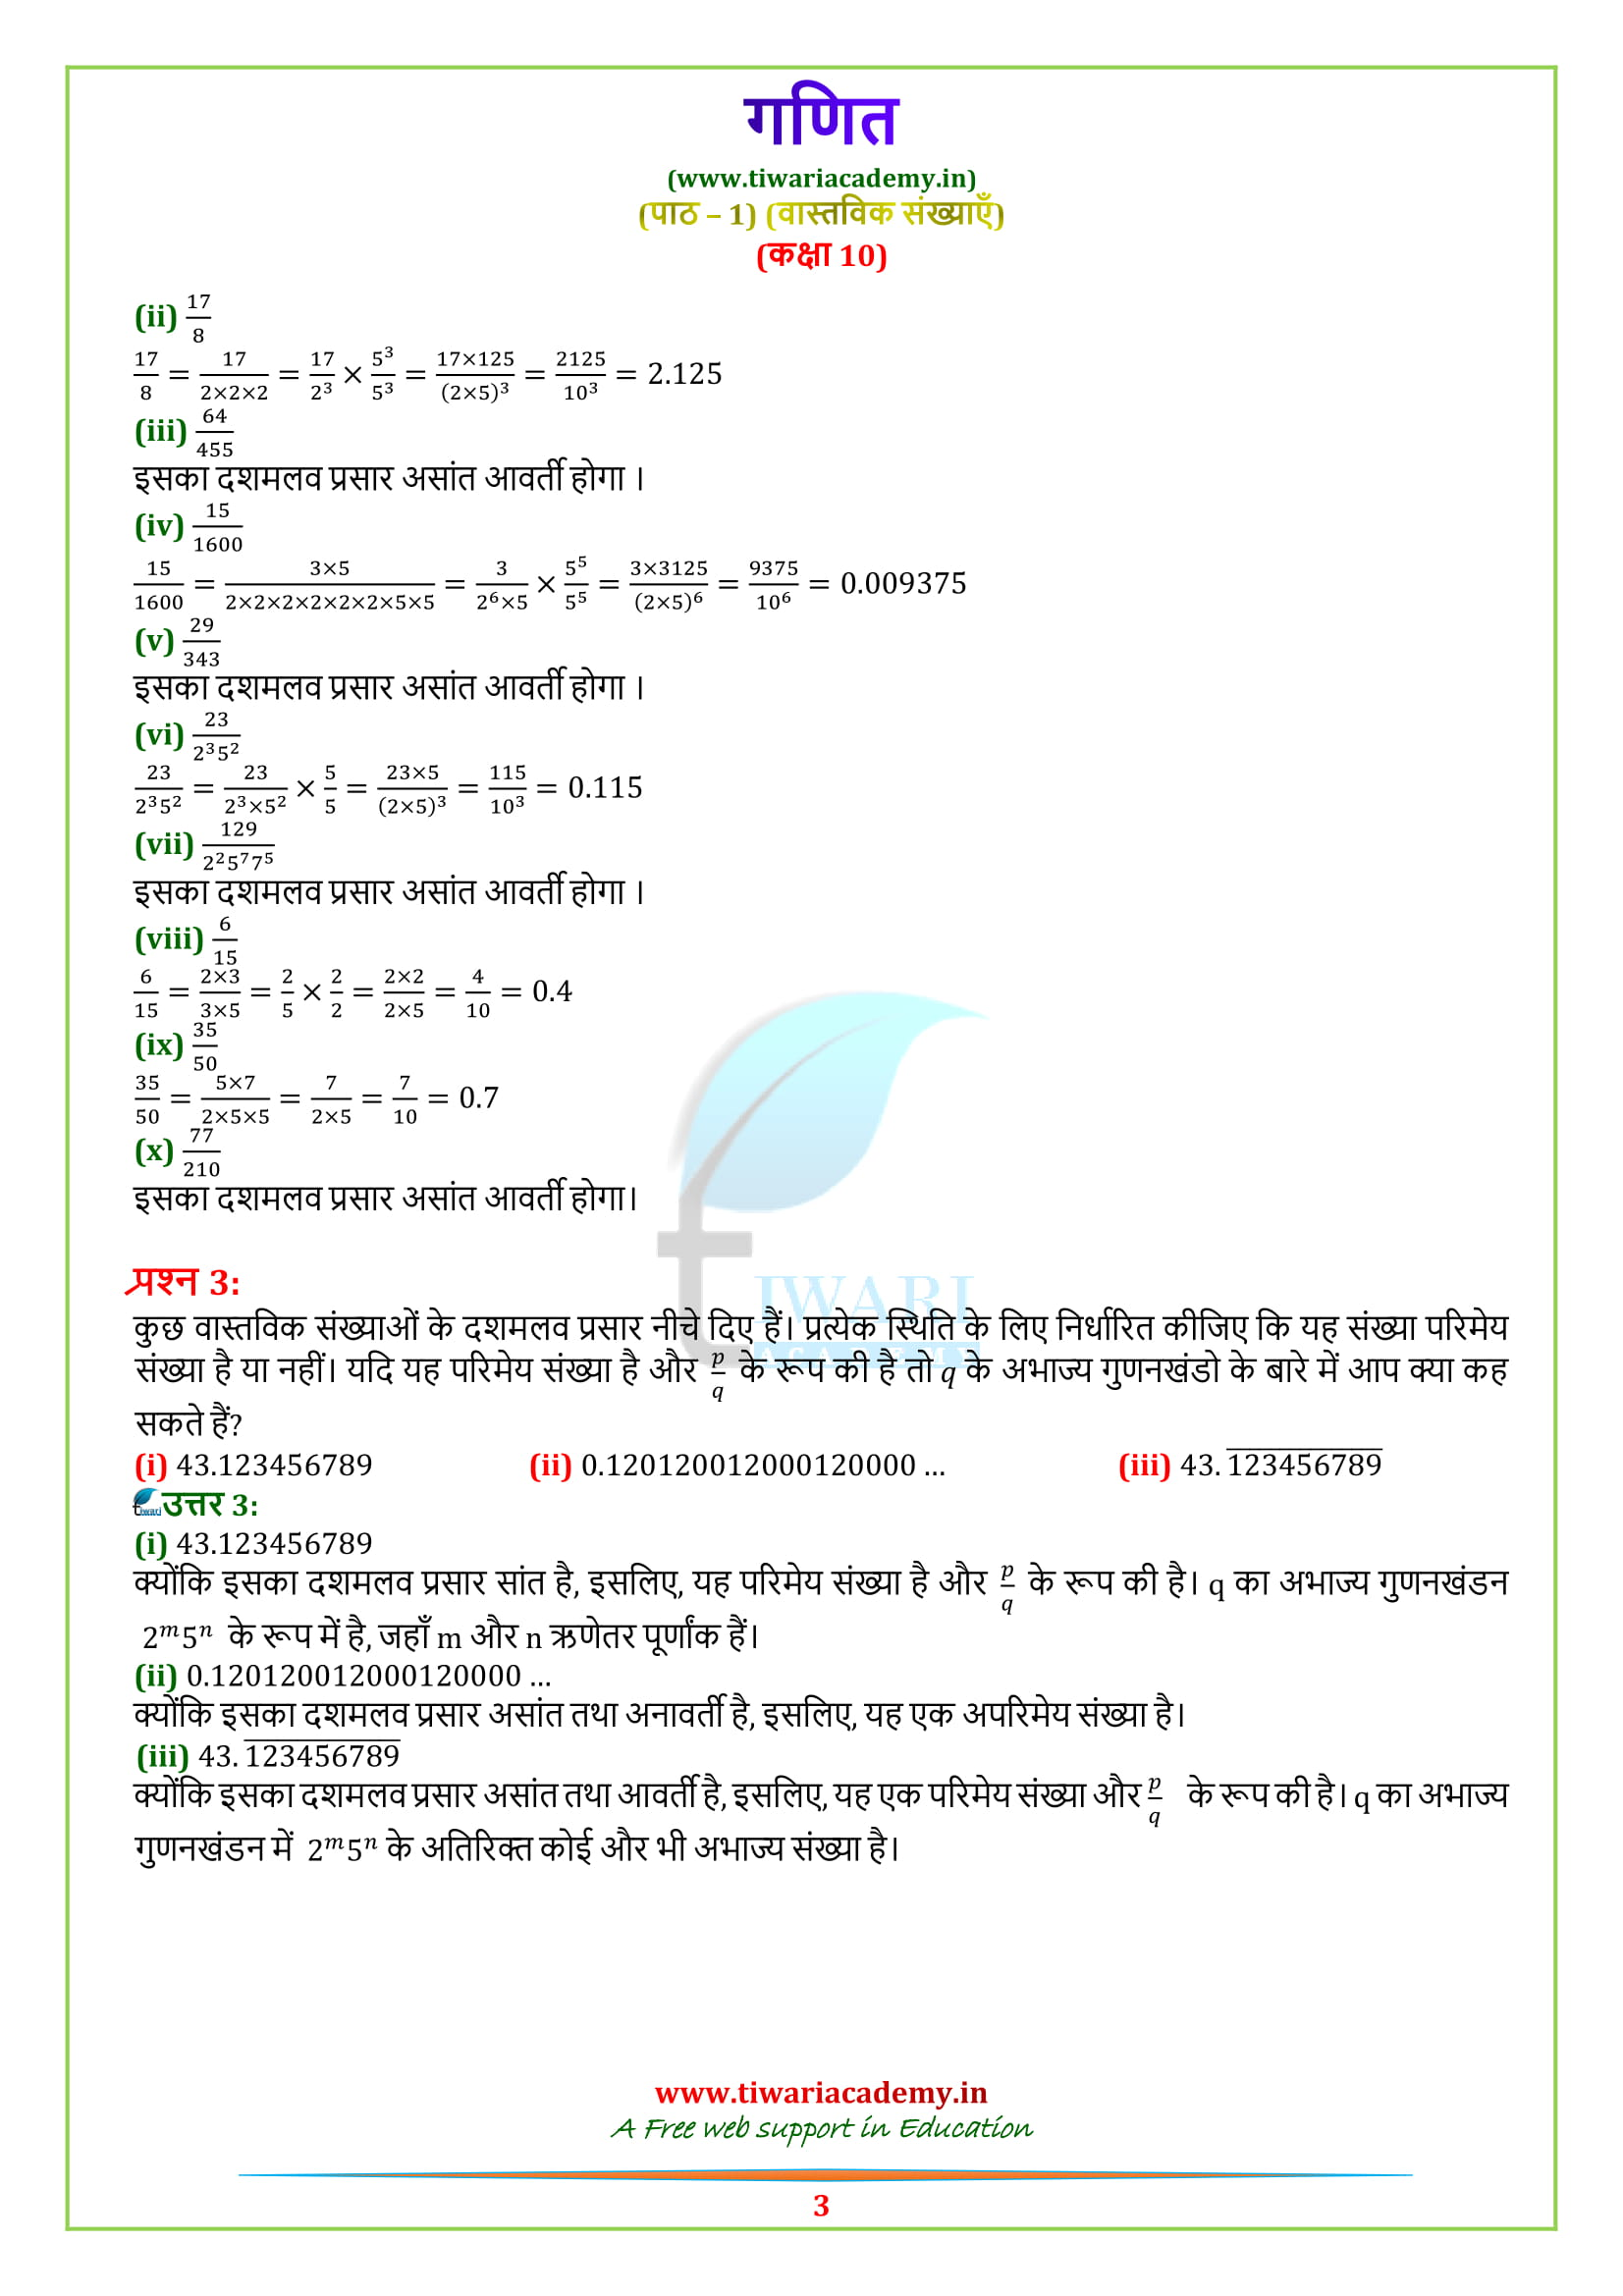 Class 10 Maths Exercise 1.4 in Hindi question 1, 2, 3